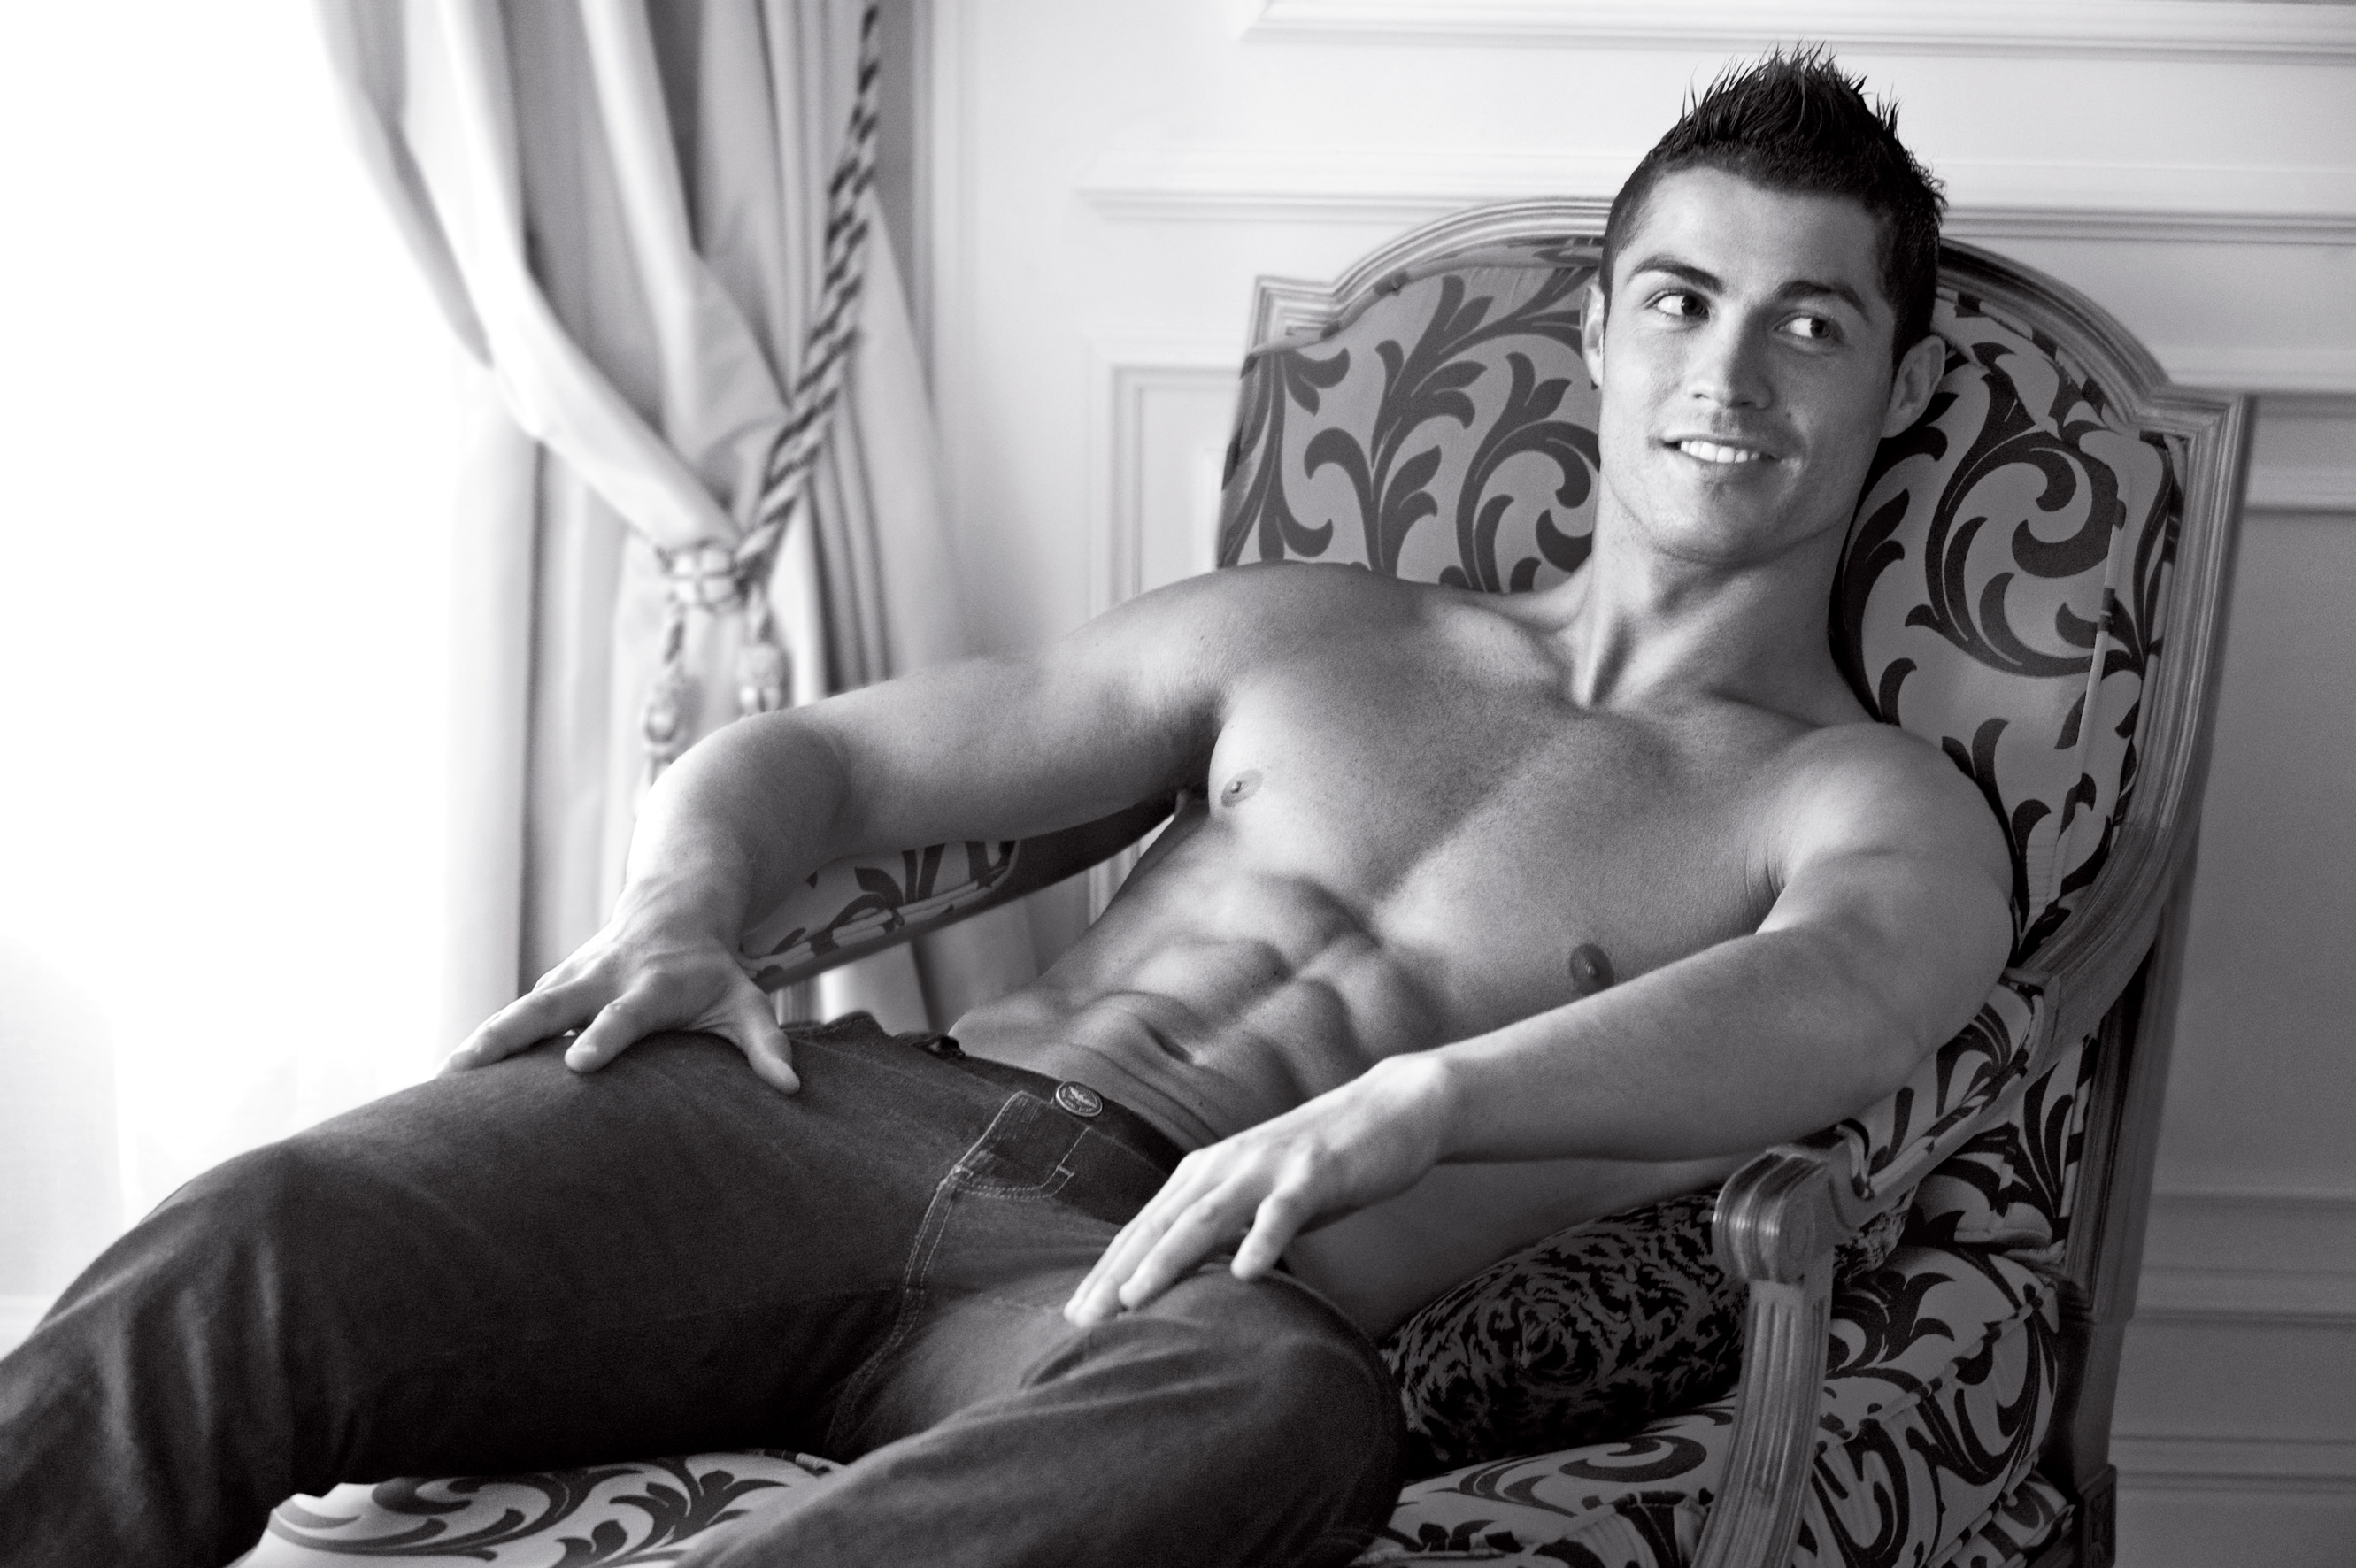 Cristiano Ronaldo Armani shirtless wallpaper